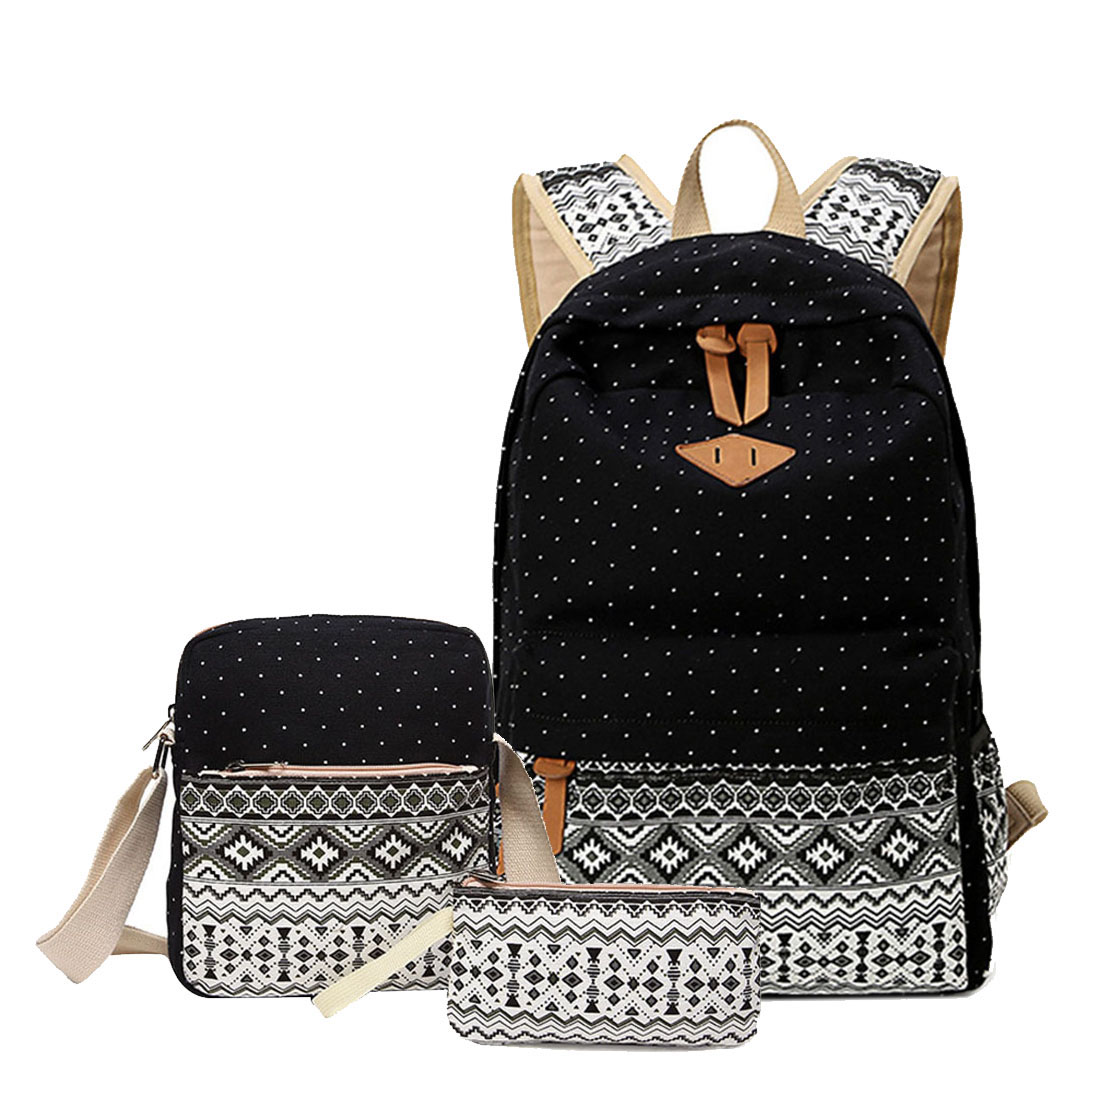 3 pcs/set Canvas Printing Backpack Women School Backpacks Bag for Teenage Girls Vintage Laptop Rucksack Bagpack Female Schoolbag jmd backpacks for teenage girls women leather with headphone jack backpack school bag casual large capacity vintage laptop bag